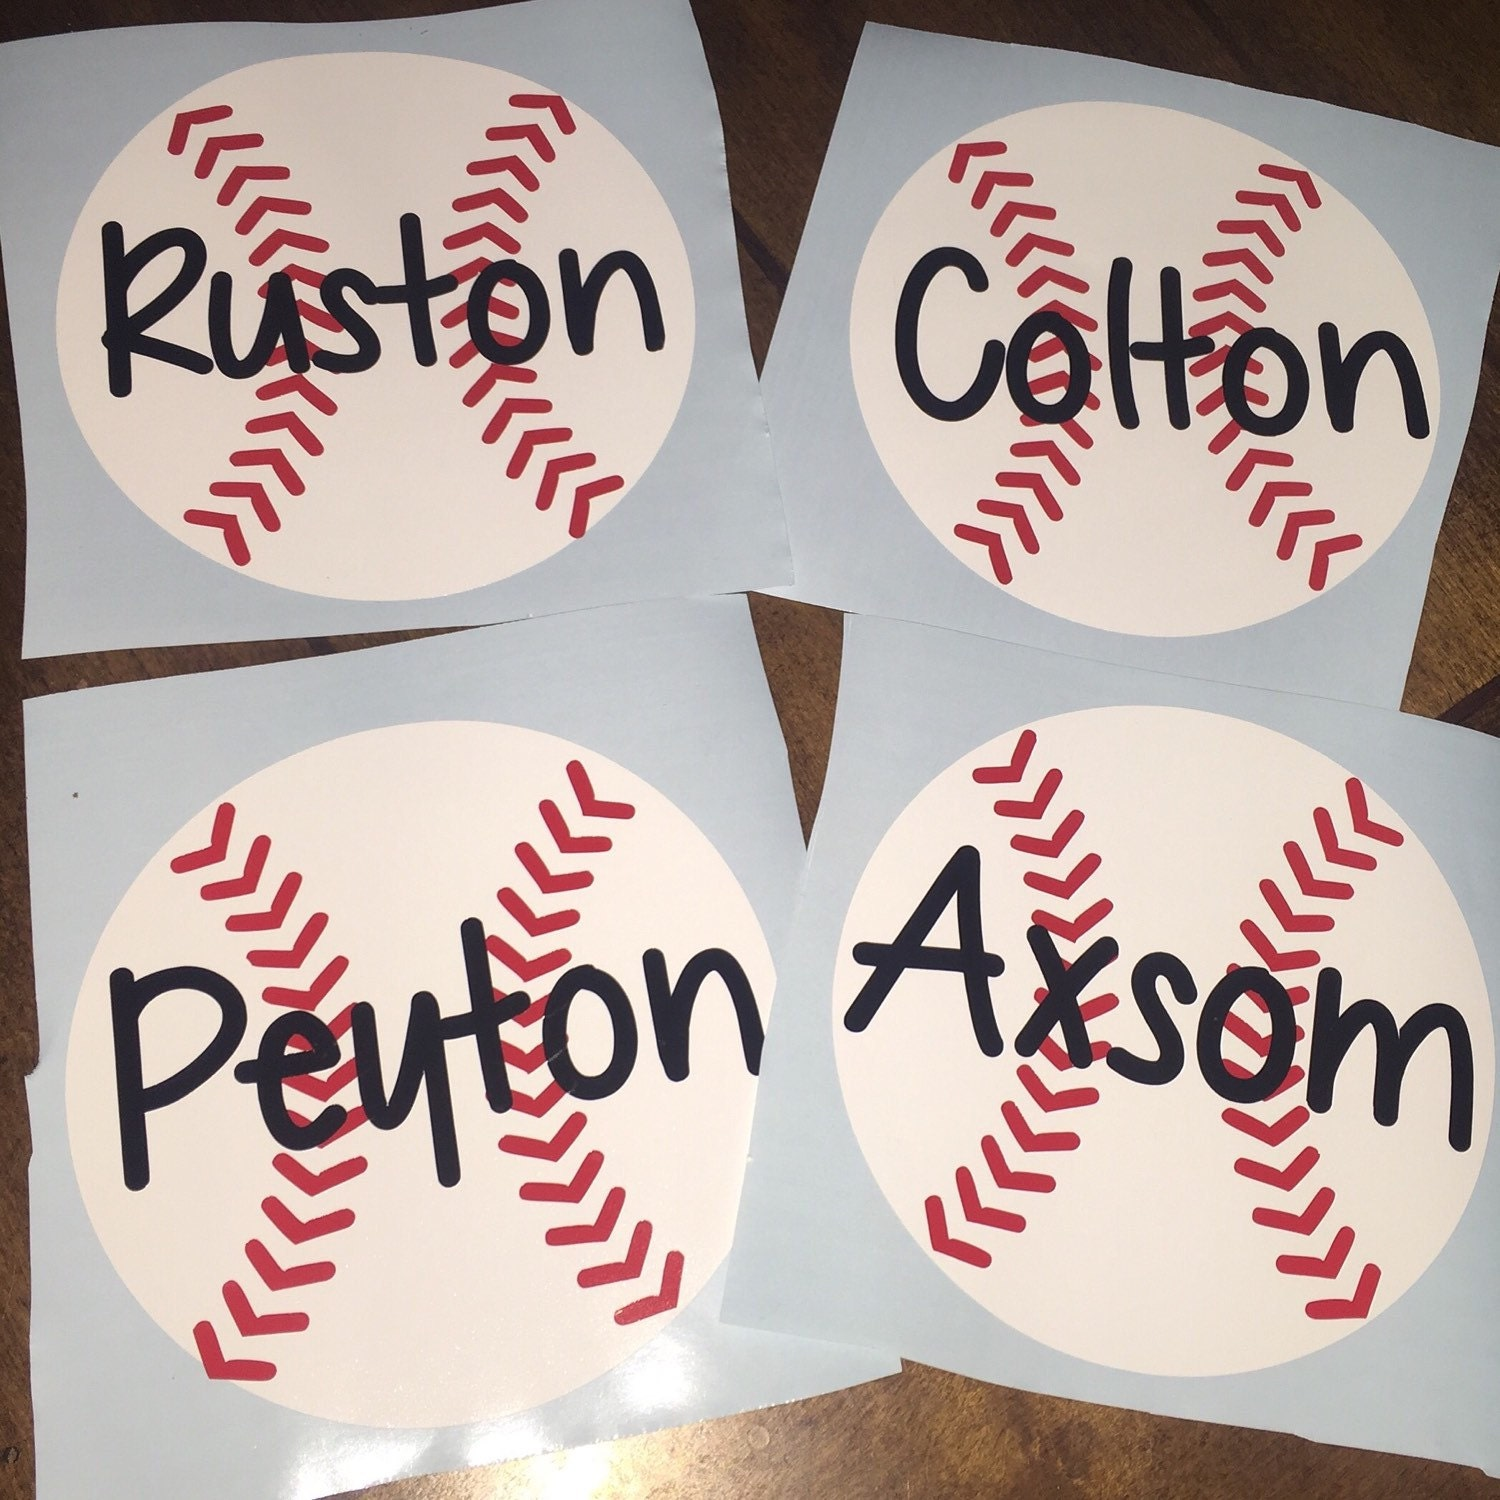 Jermyn Baseball And Softball Home: Baseball And Softball Car Decals With Or Without Player